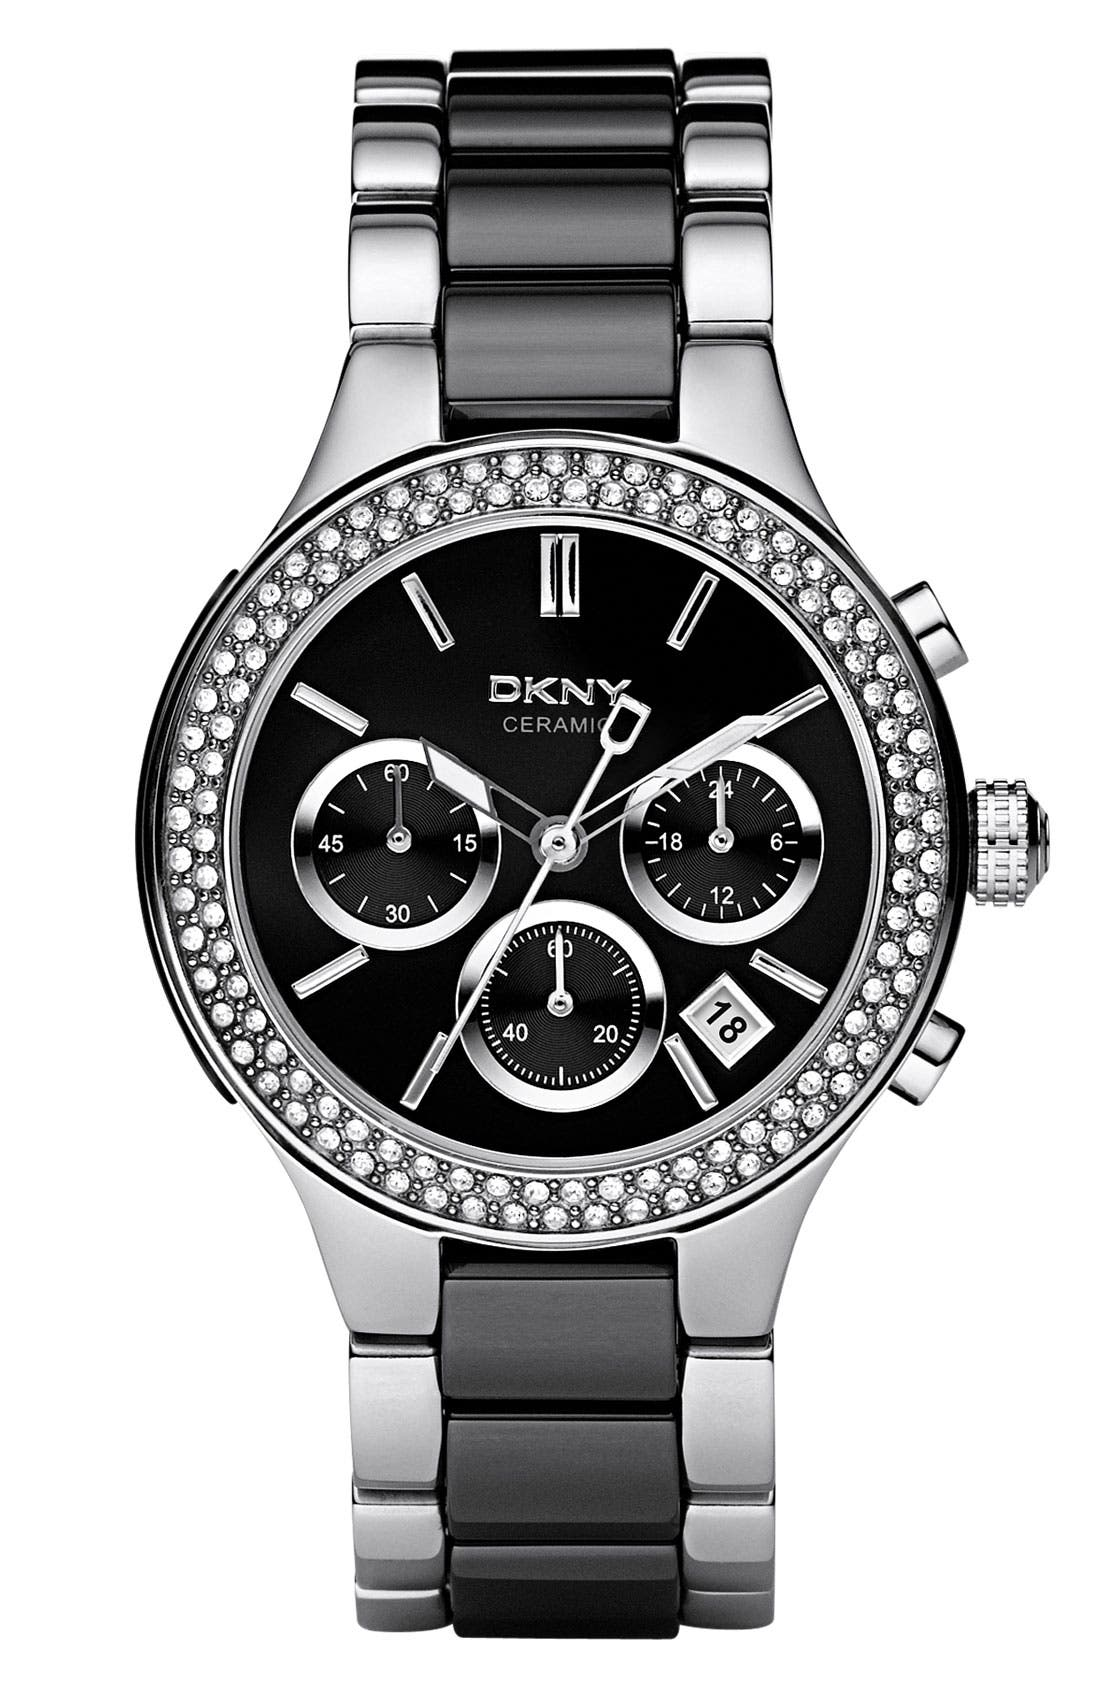 Main Image - DKNY 'Chambers' Ceramic & Stainless Steel Crystal Bezel Watch, 38mm